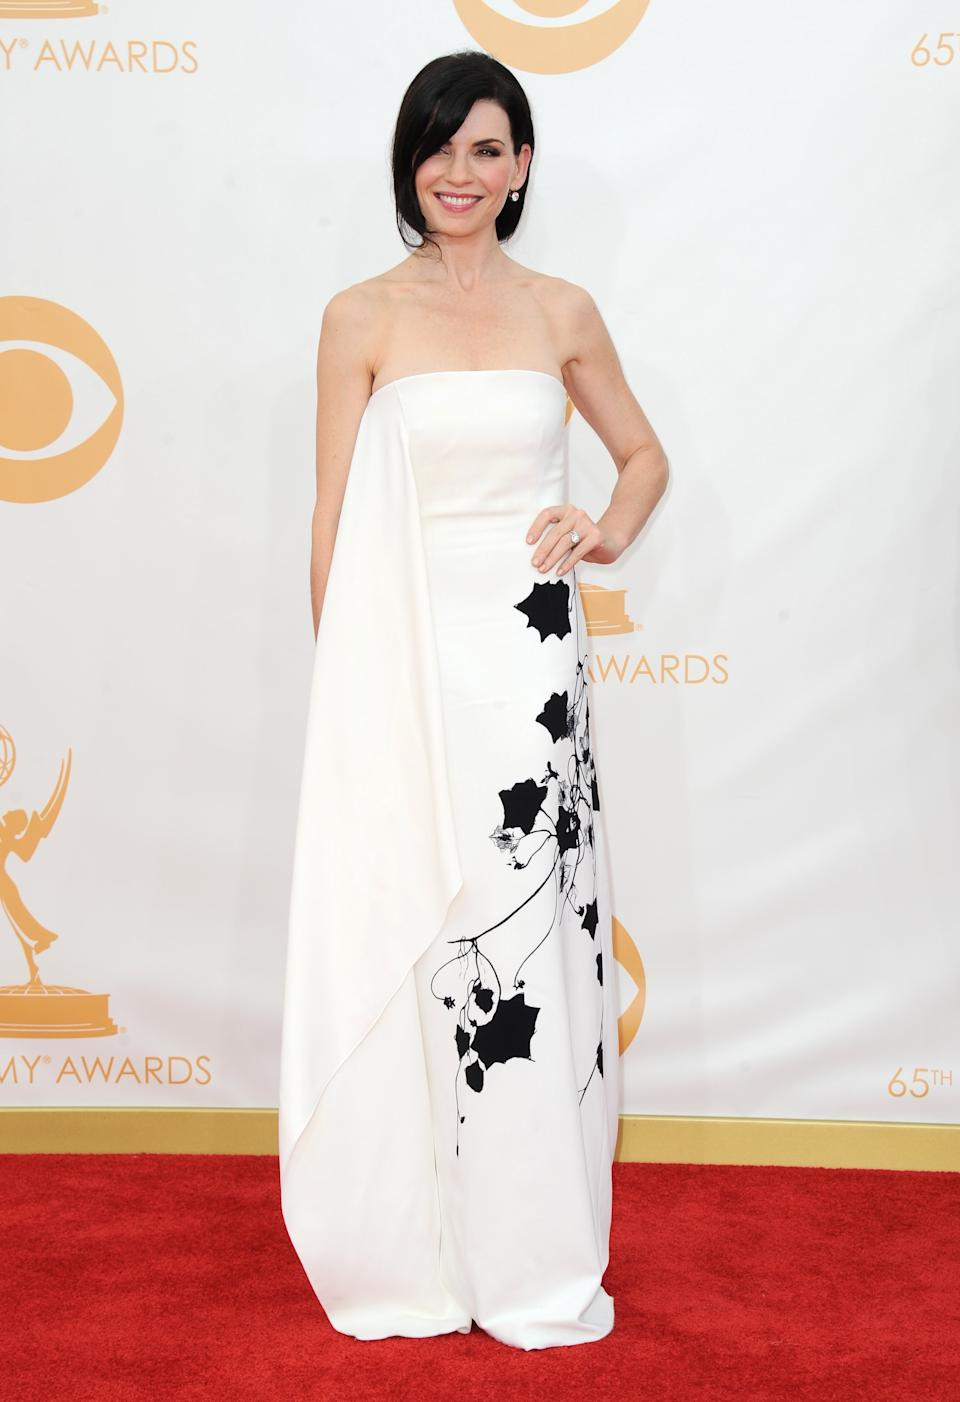 Julianna Margulies arrives at the 65th Primetime Emmy Awards at Nokia Theatre on Sunday Sept. 22, 2013, in Los Angeles. (Photo by Jordan Strauss/Invision/AP)